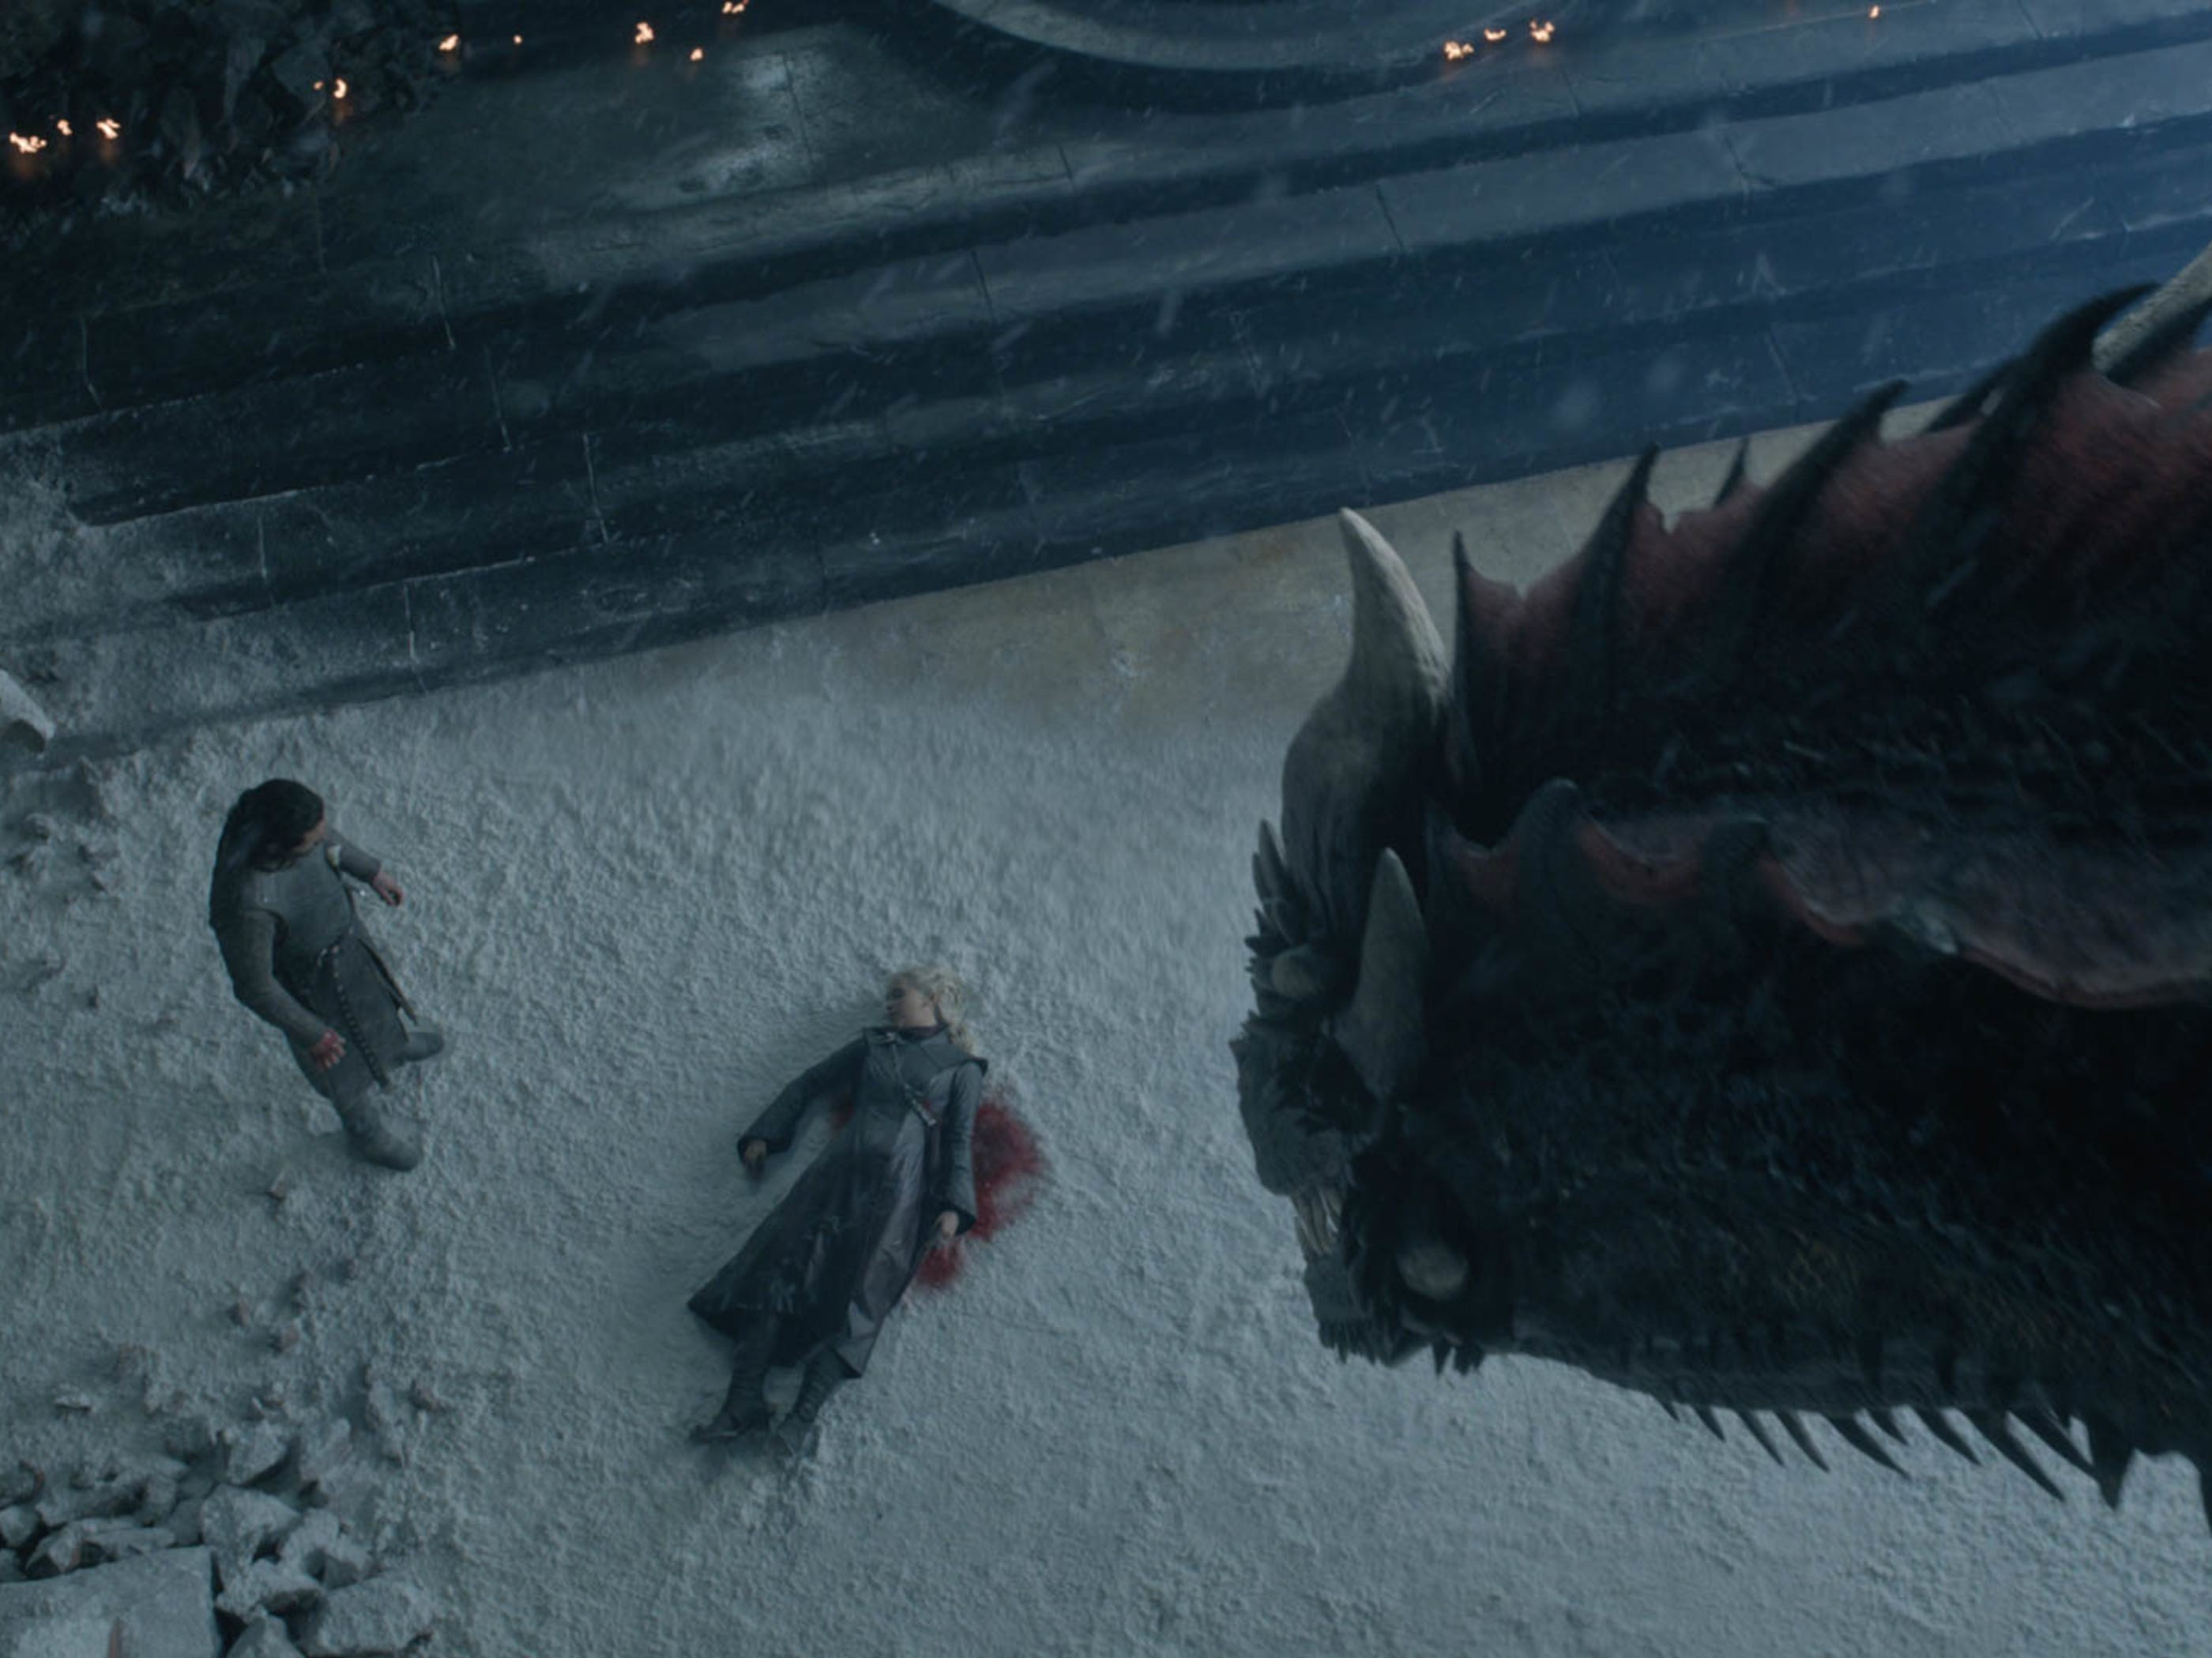 Jon Snow (Kit Harington), left, looks at the lifeless body of Daenerys Targaryen (Emilia Clarke) as her dragon, Drogon, watches.